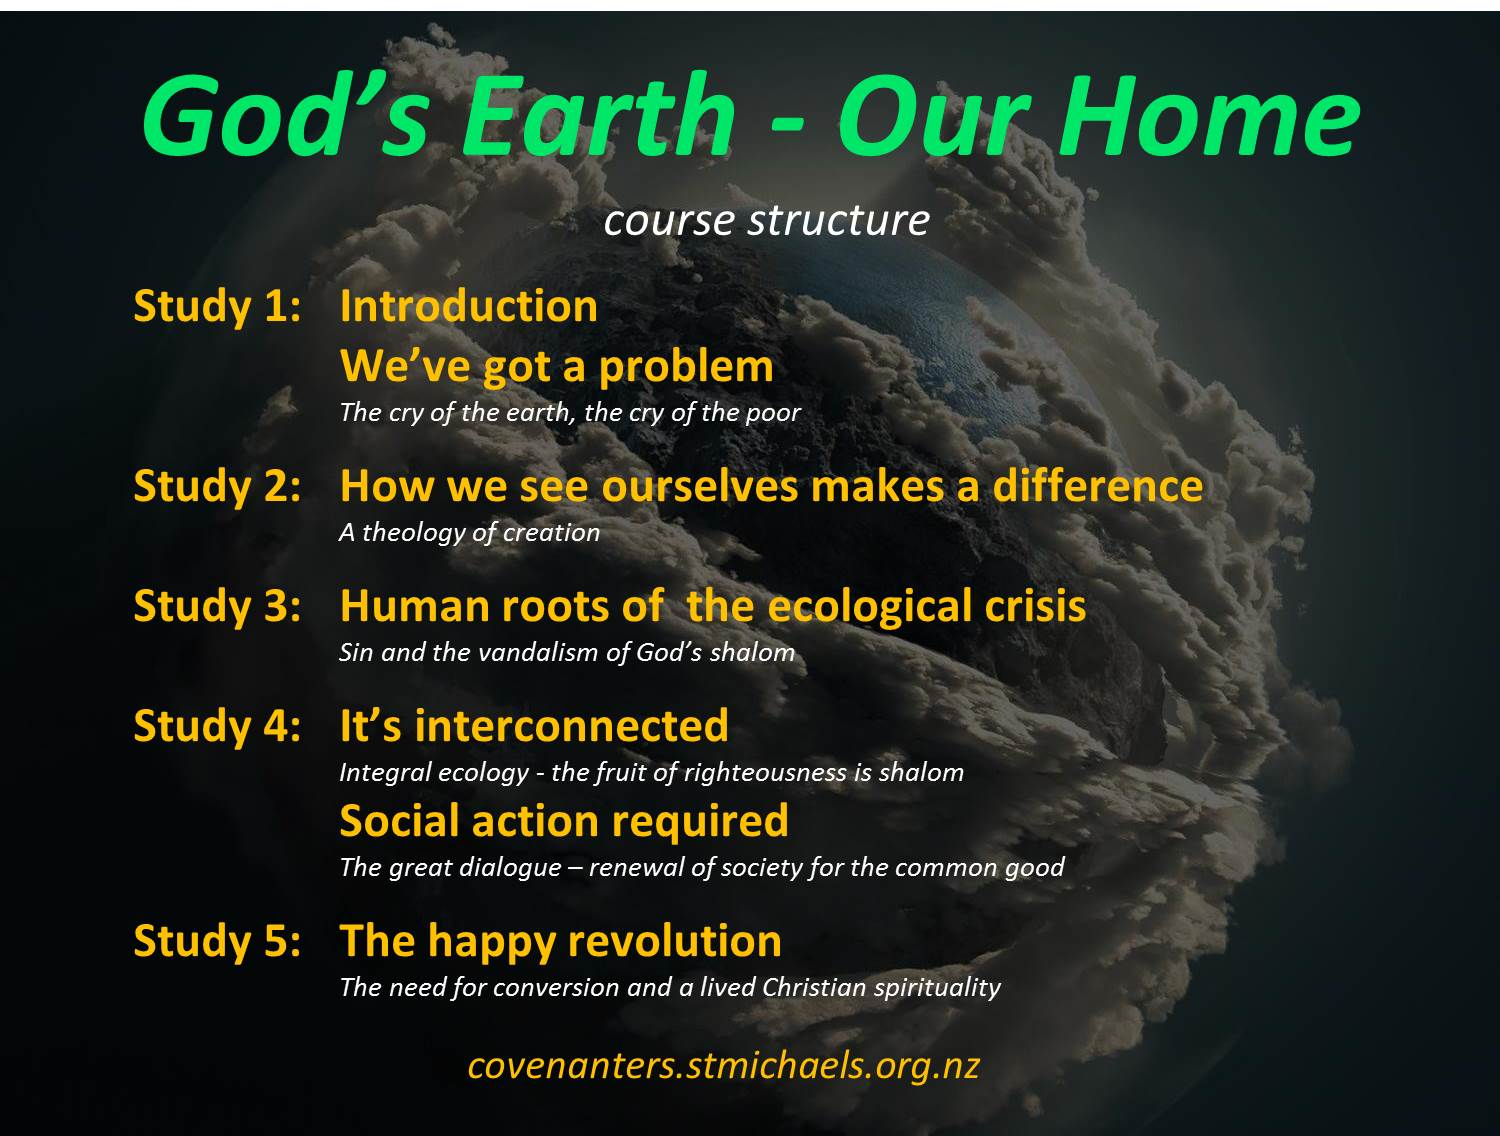 God's Earth - series structure